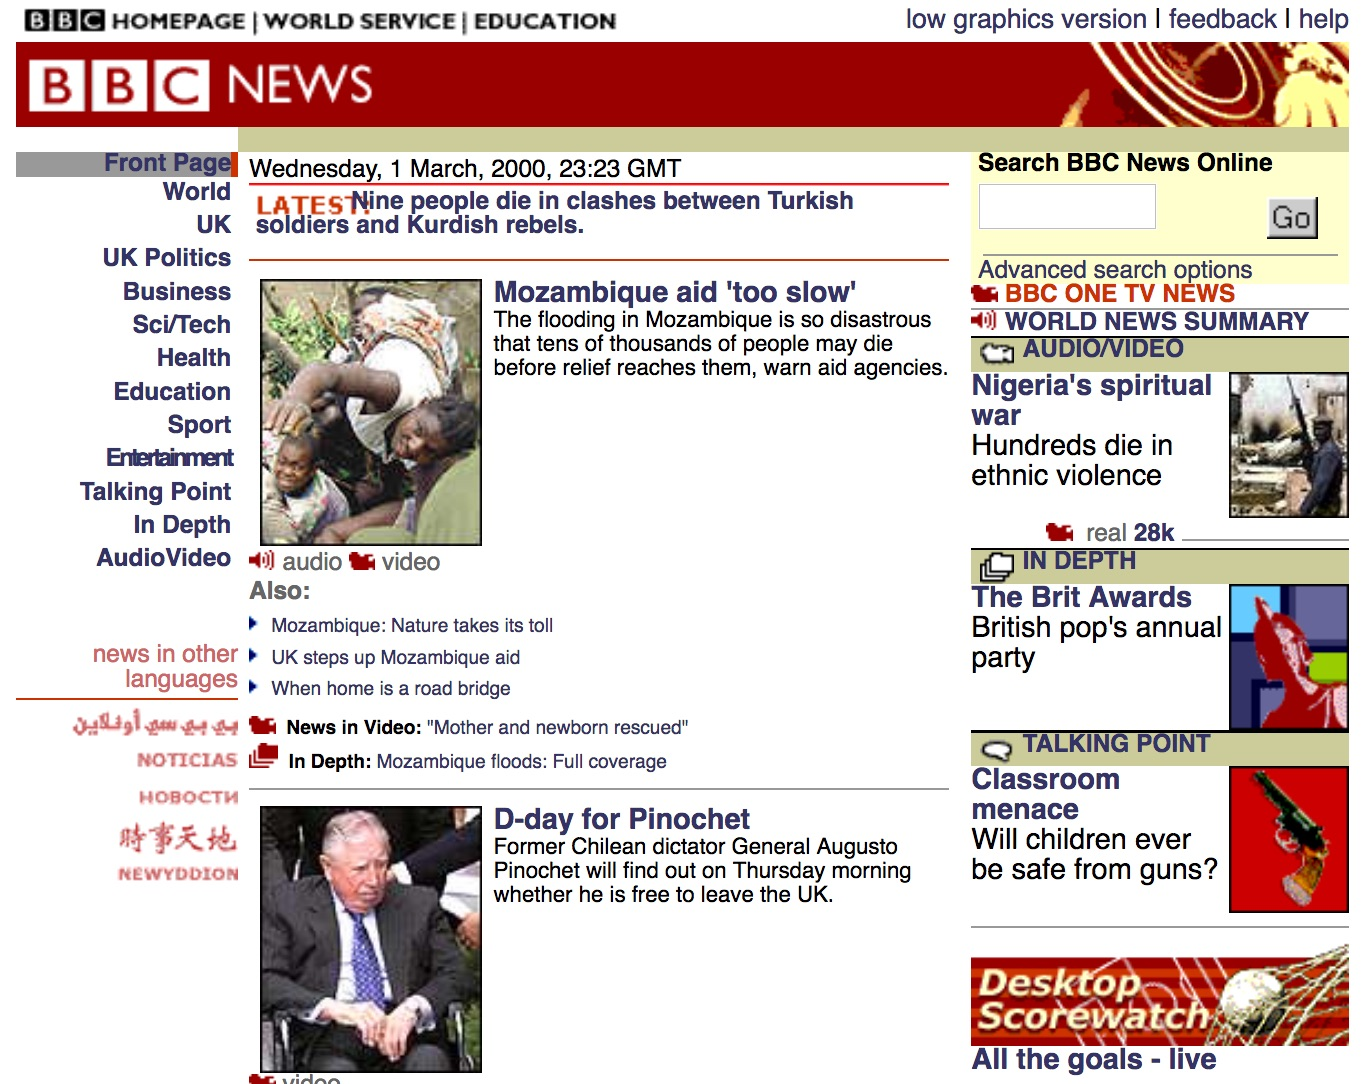 BBC.co.uk news homepage (2000)